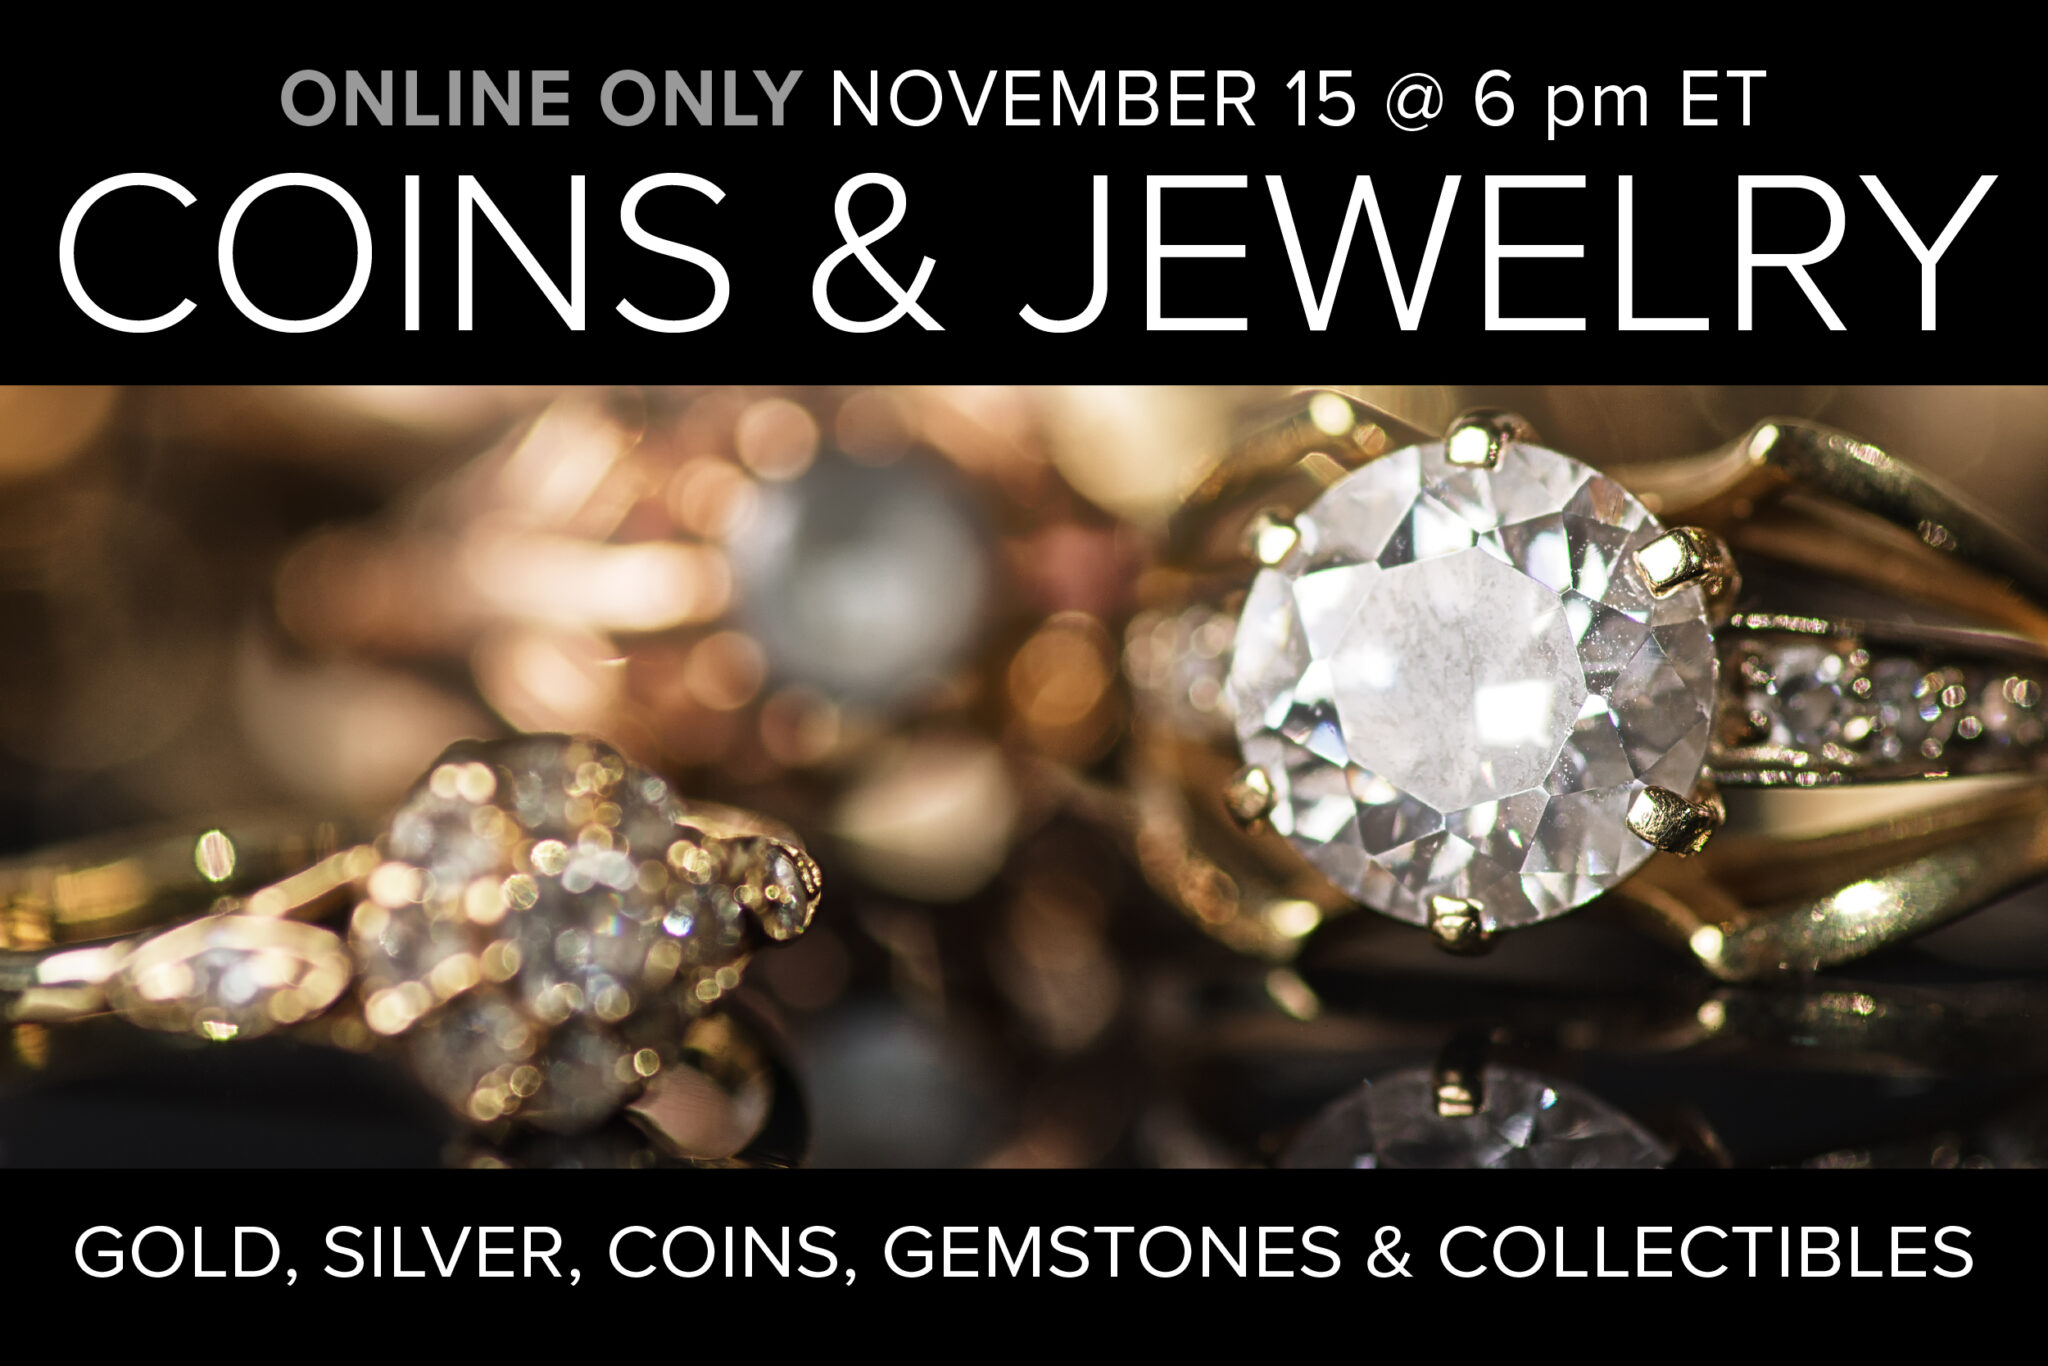 November coin and jewelry